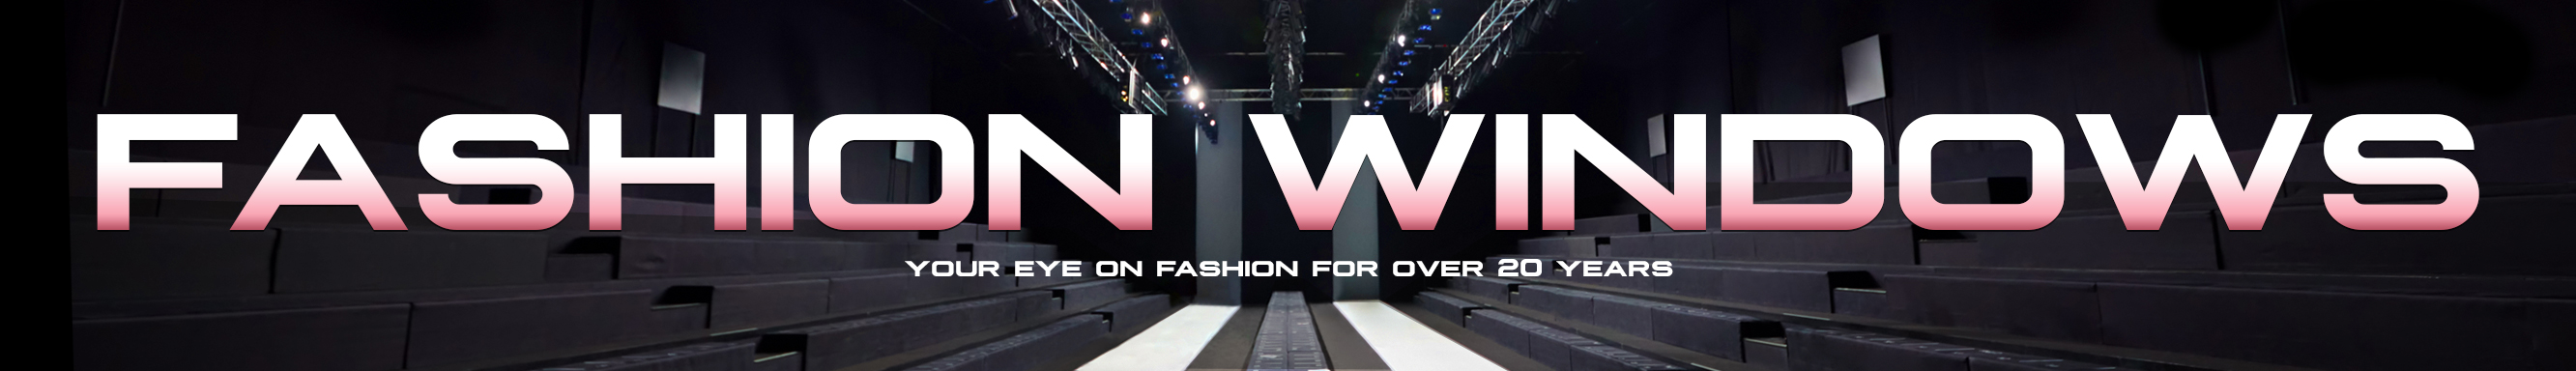 FashionWindows Network